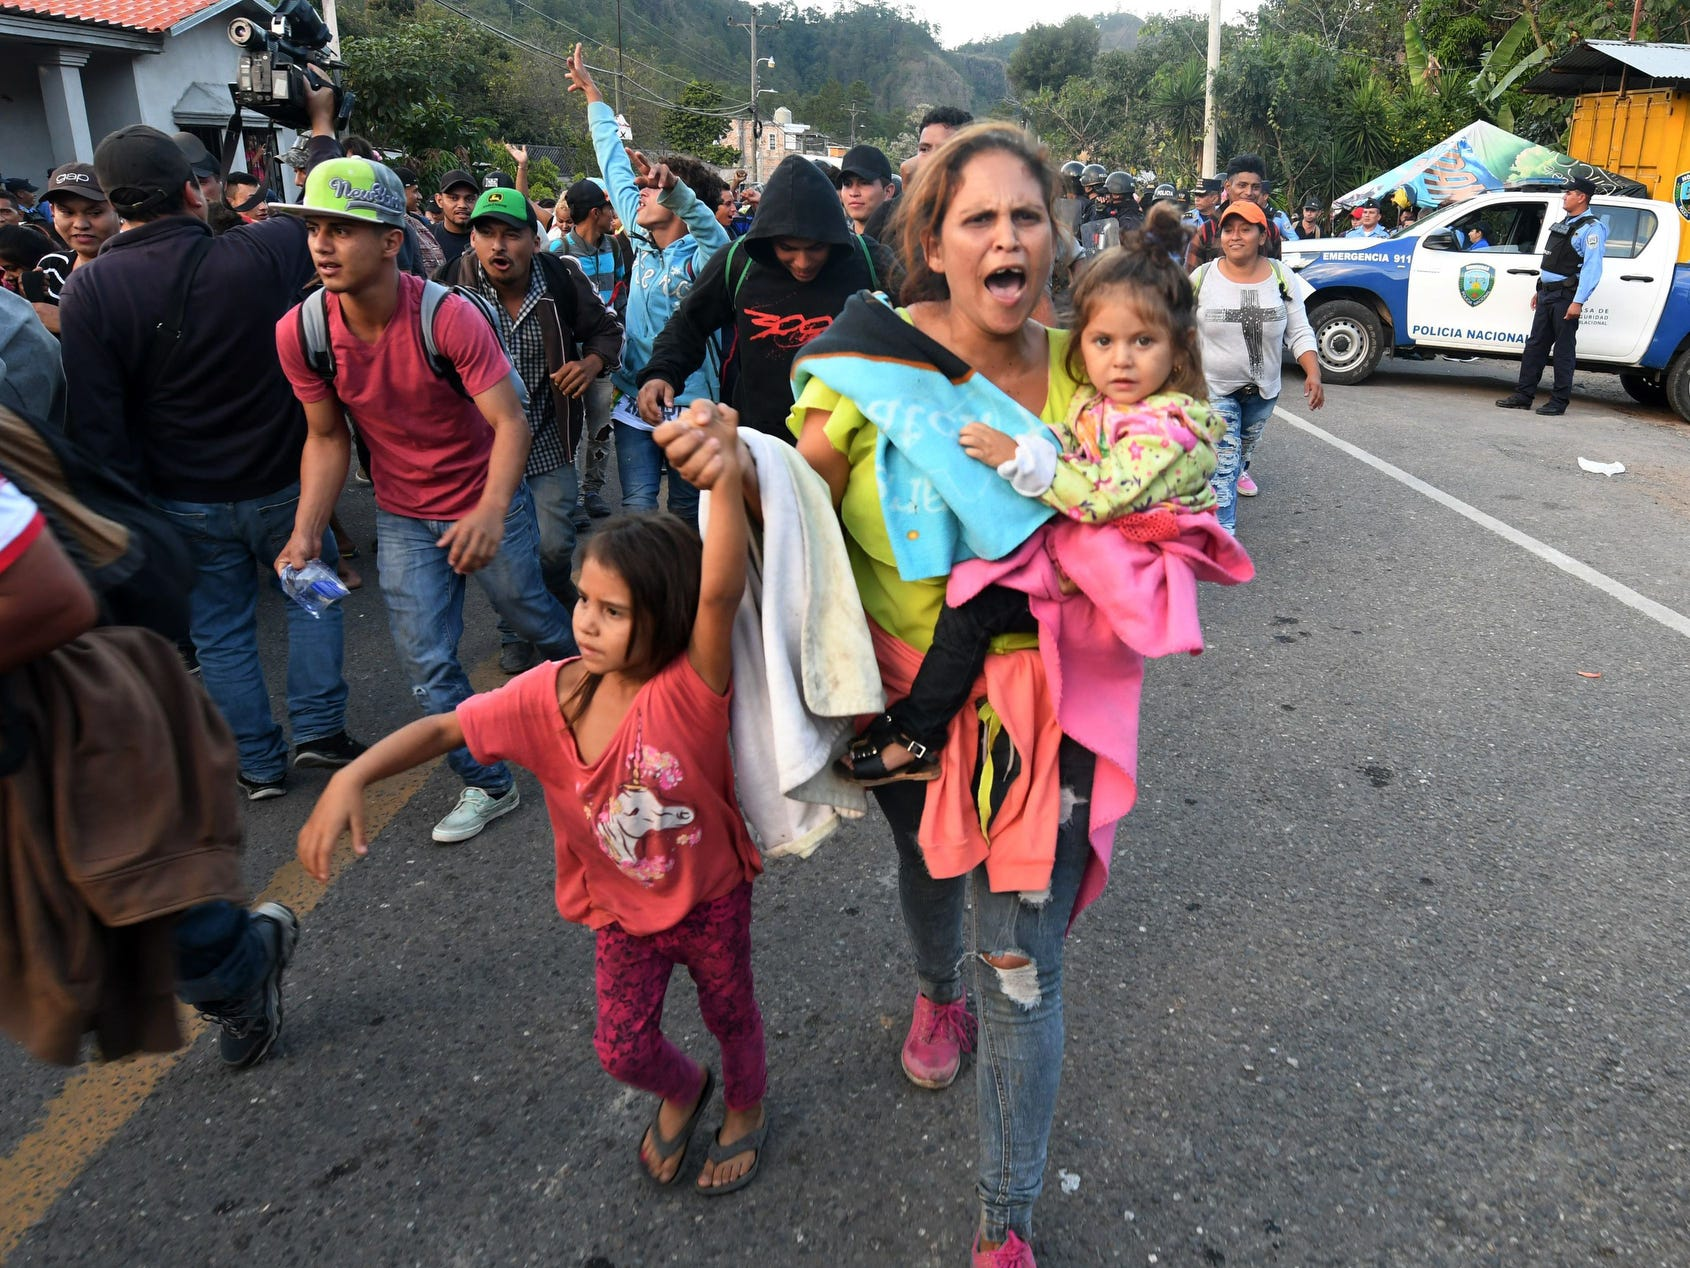 Honduran migrants heading to the United States with a second caravan walk after breaking through a police cordon in Agua Caliente, in the Honduras-Guatemala border on Jan. 15, 2019.